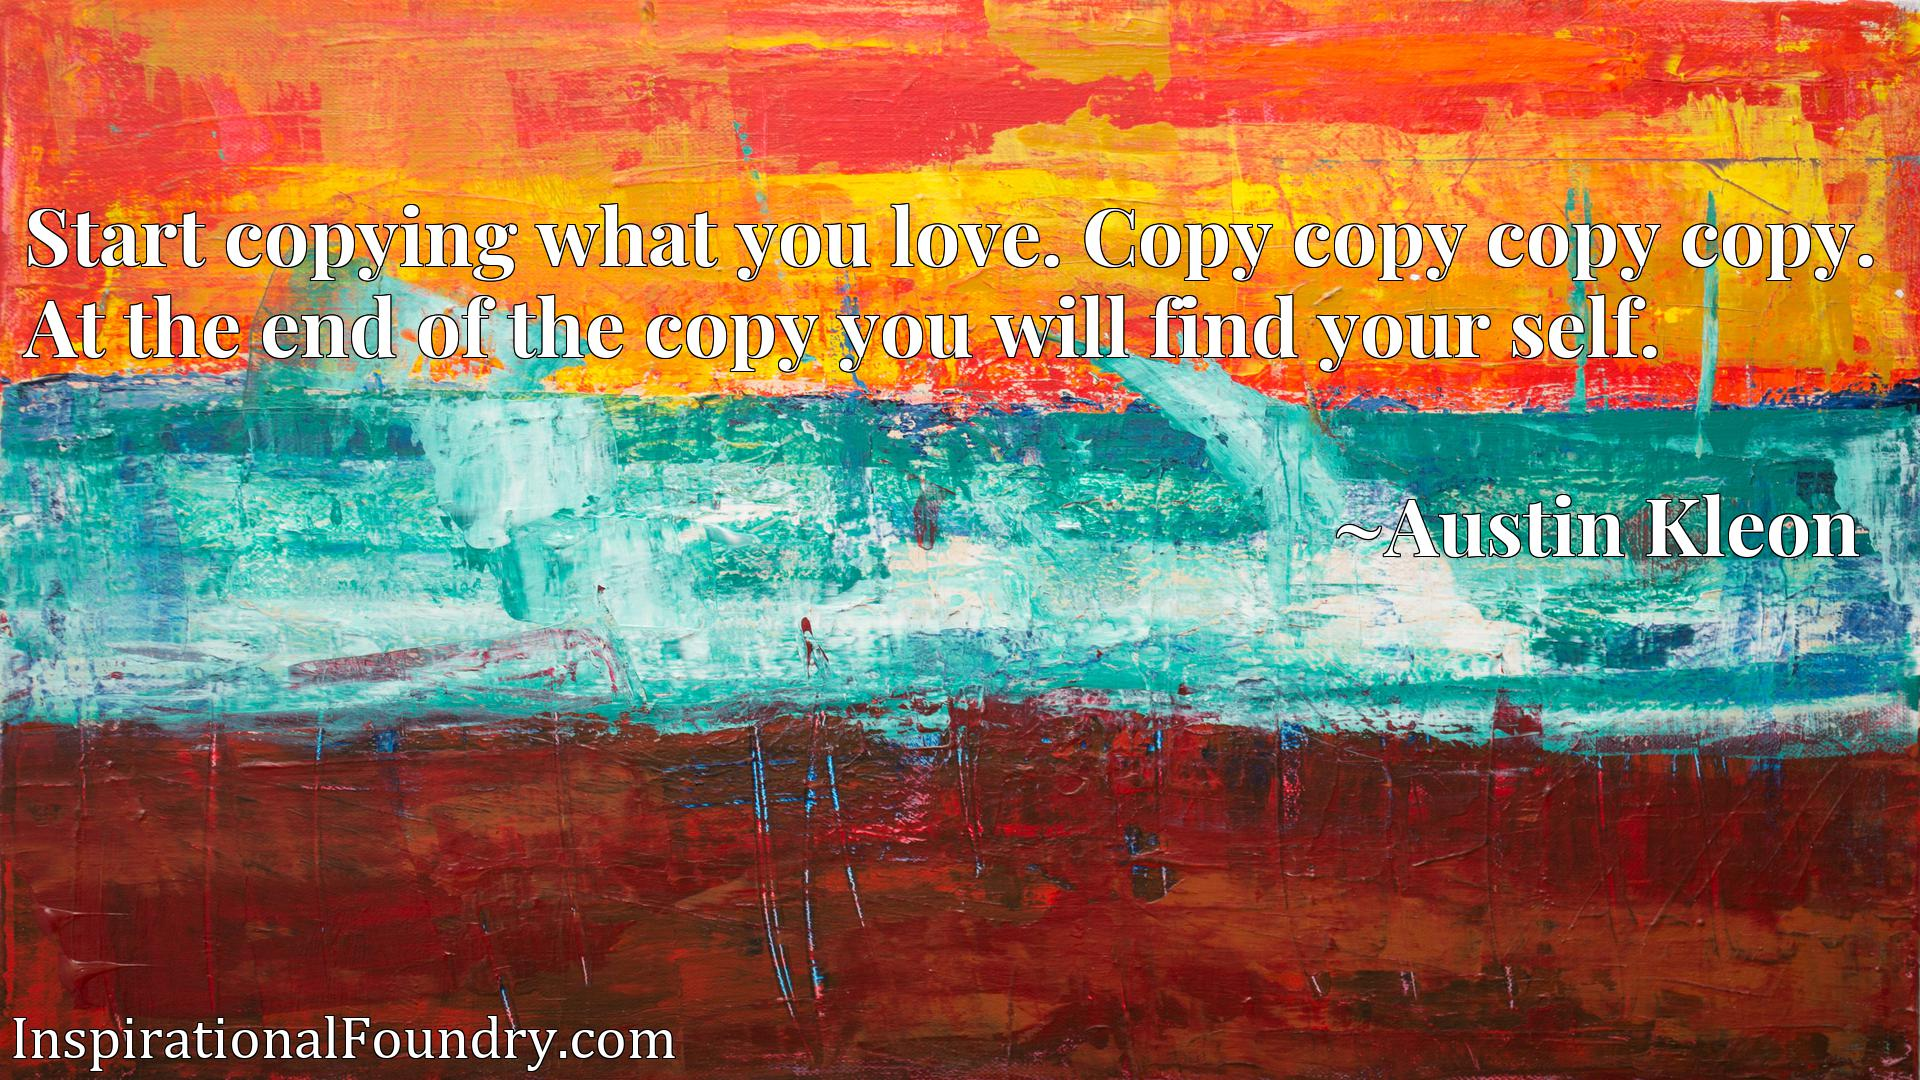 Start copying what you love. Copy copy copy copy. At the end of the copy you will find your self.